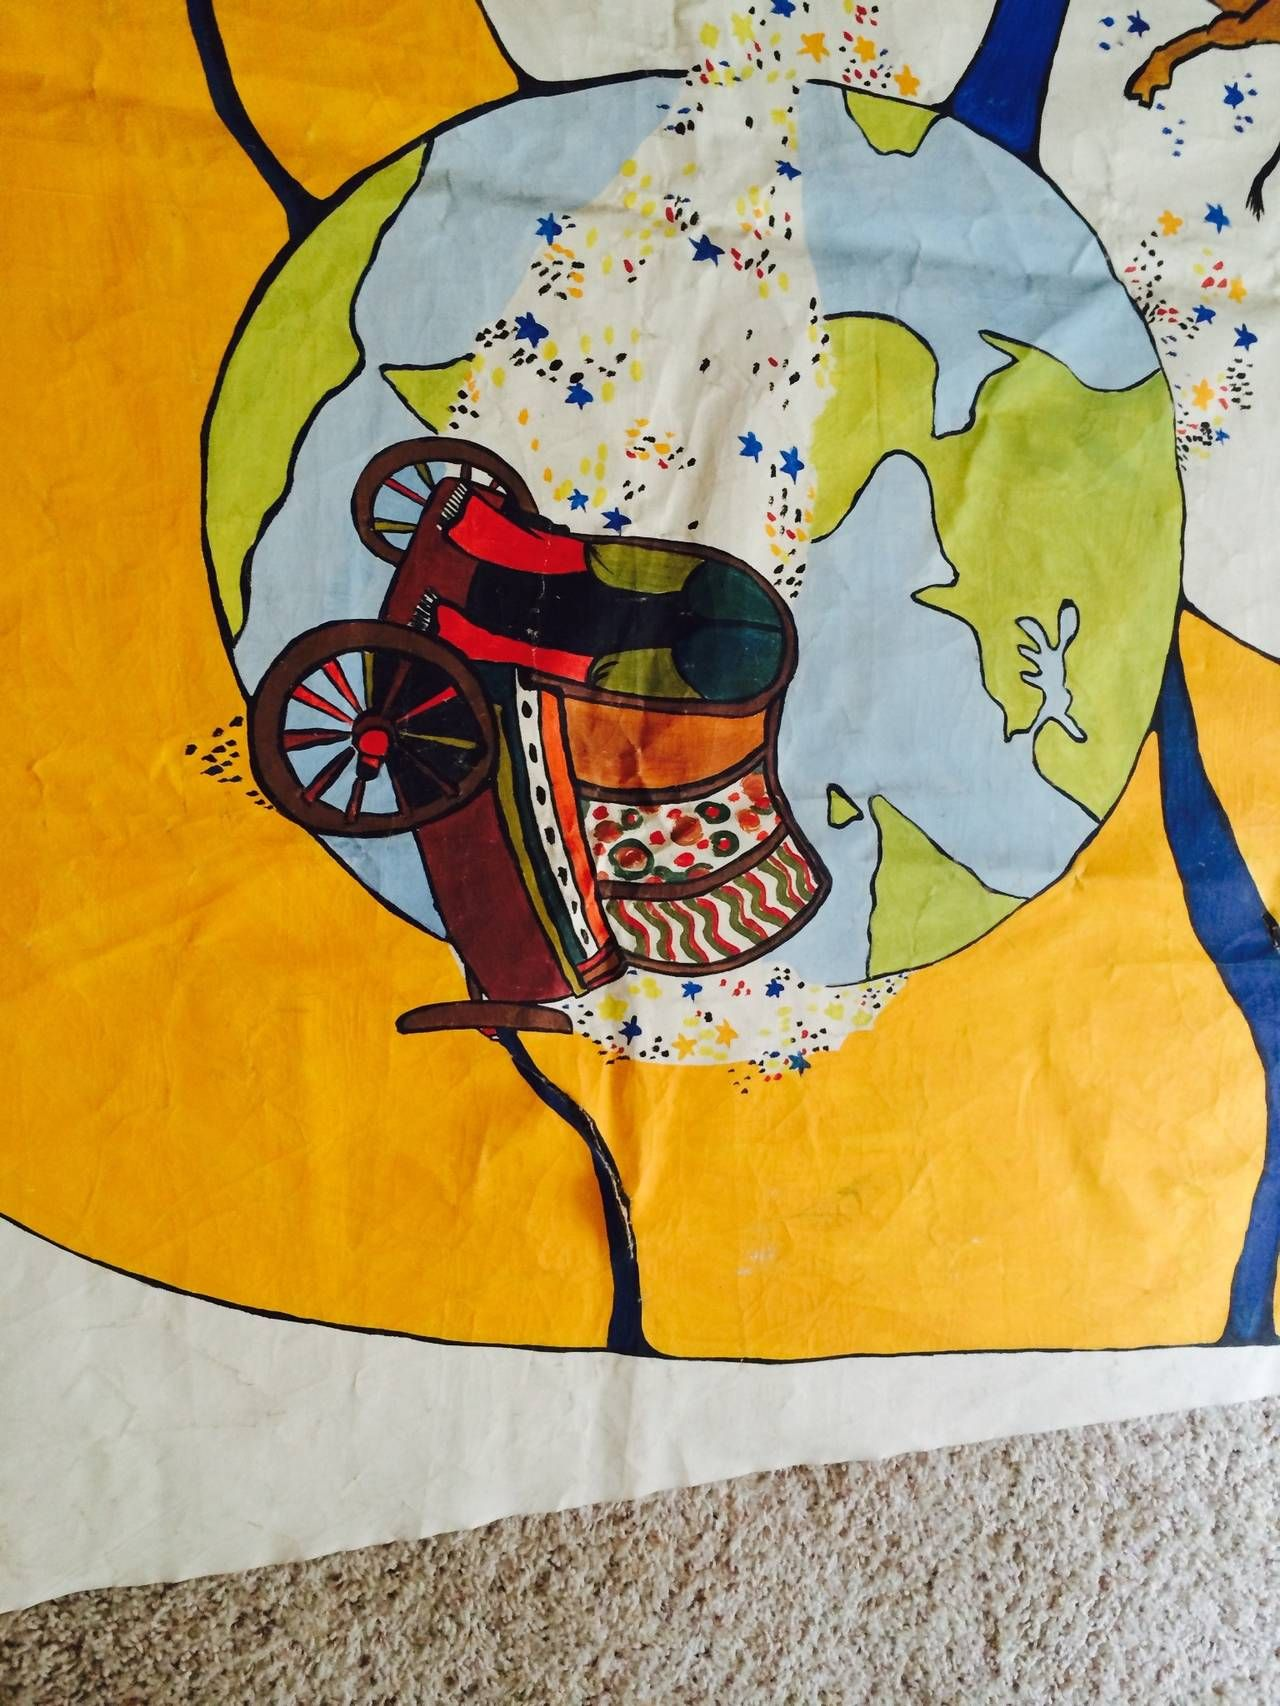 Carnival Banner, circa 1960 | Carnival, Banners and Canvases